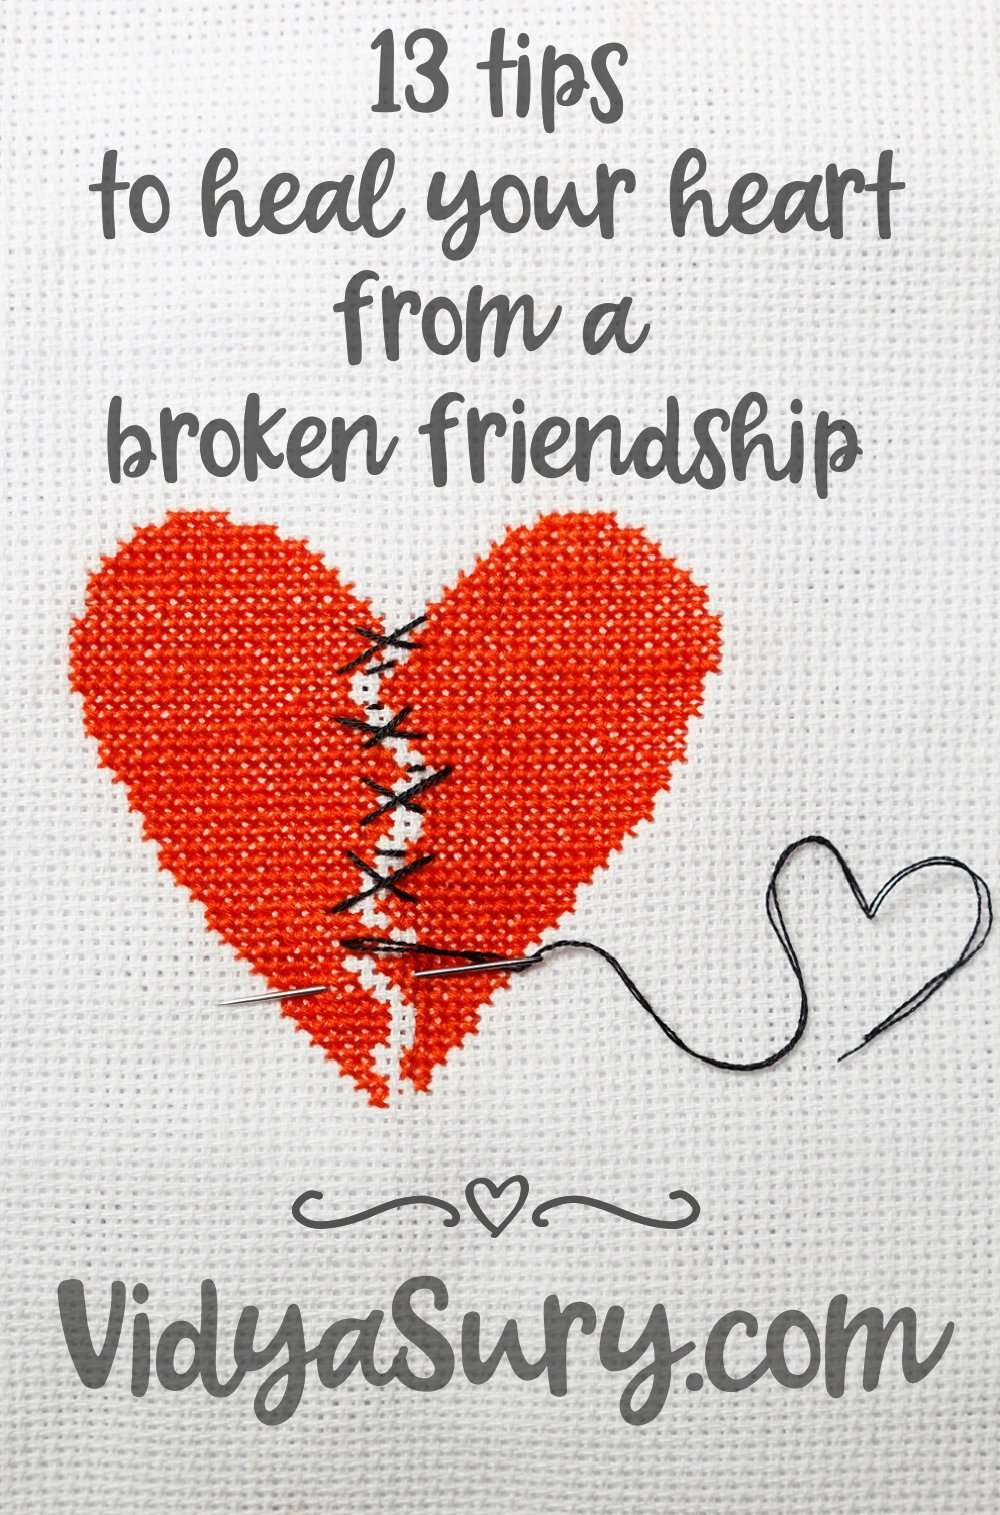 13 tips to heal your heart from a broken friendship